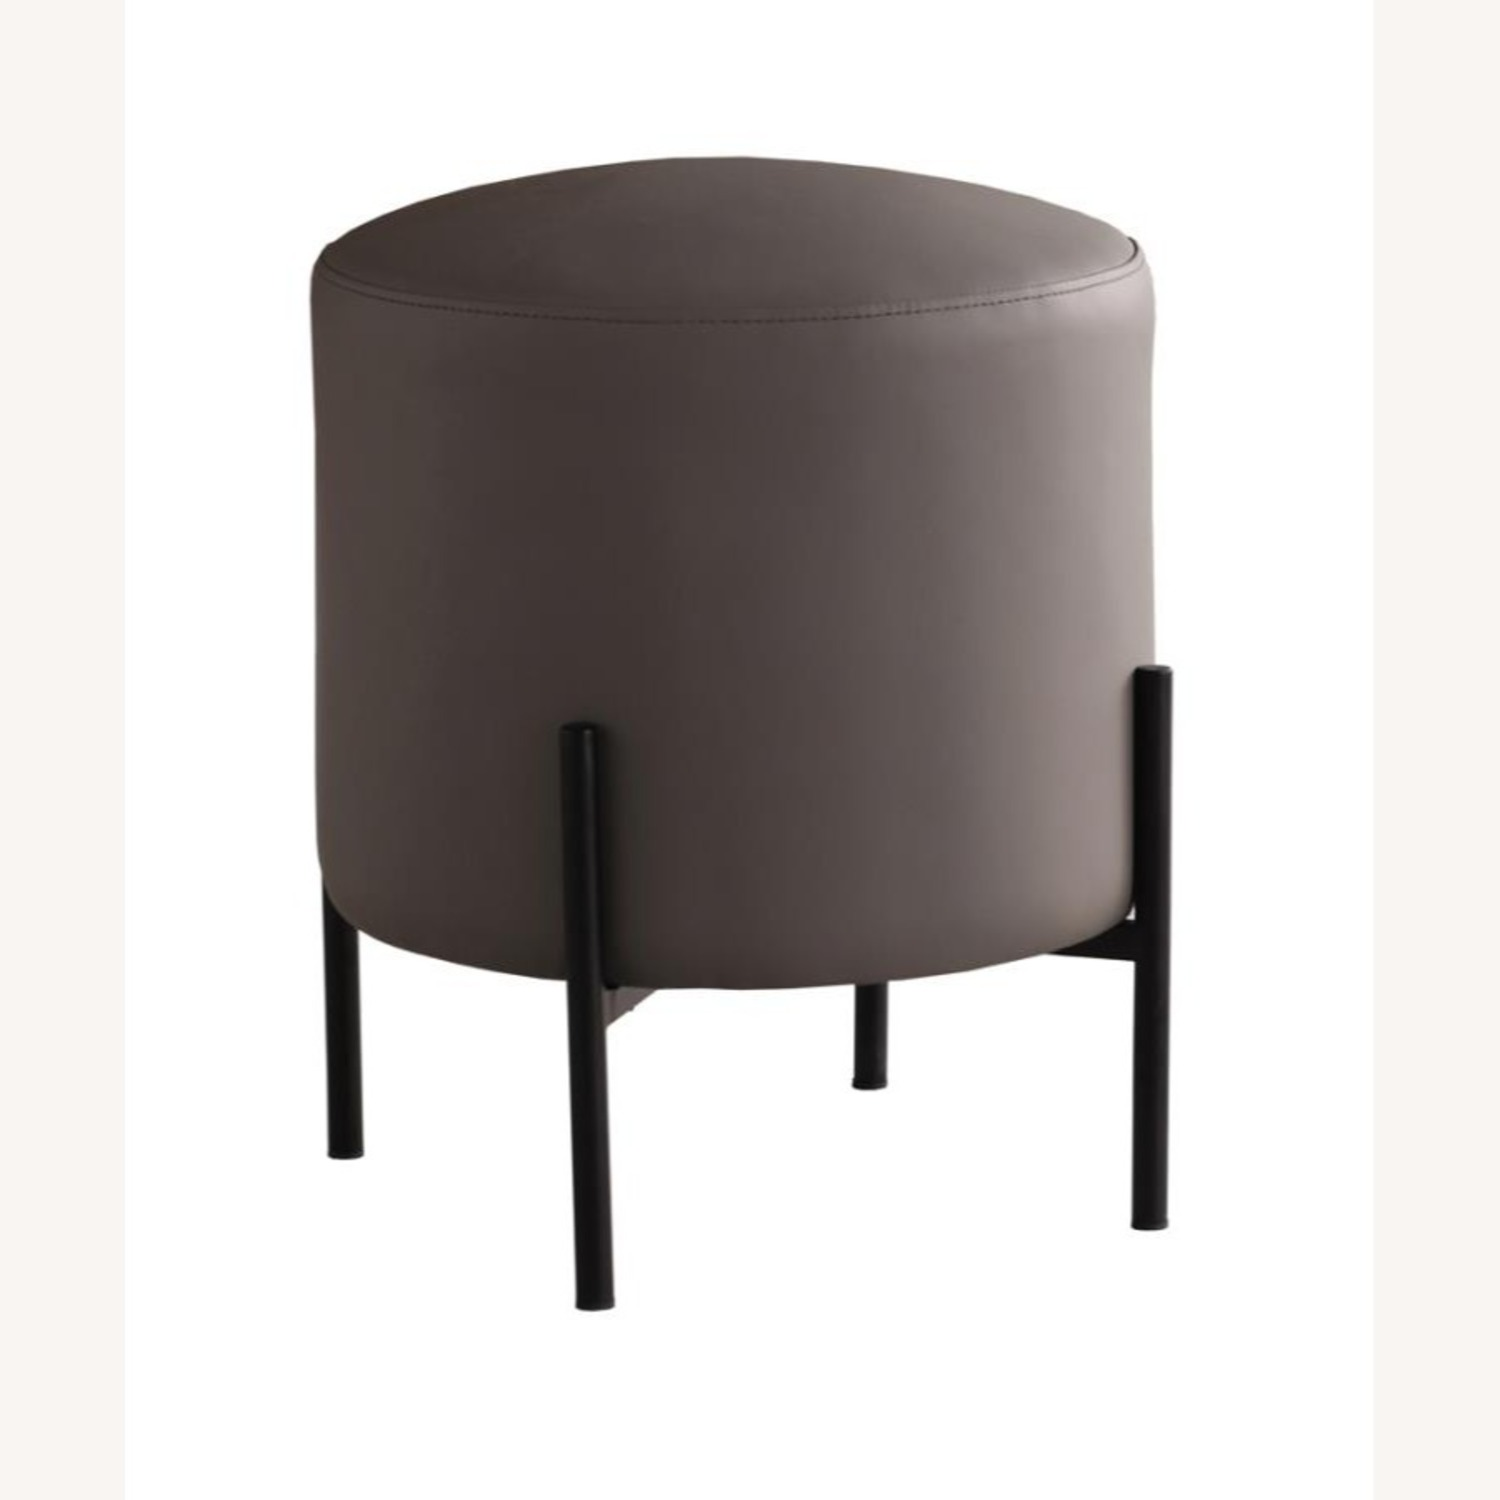 Ottoman In Light Grey & Leatherette Upholstery - image-0